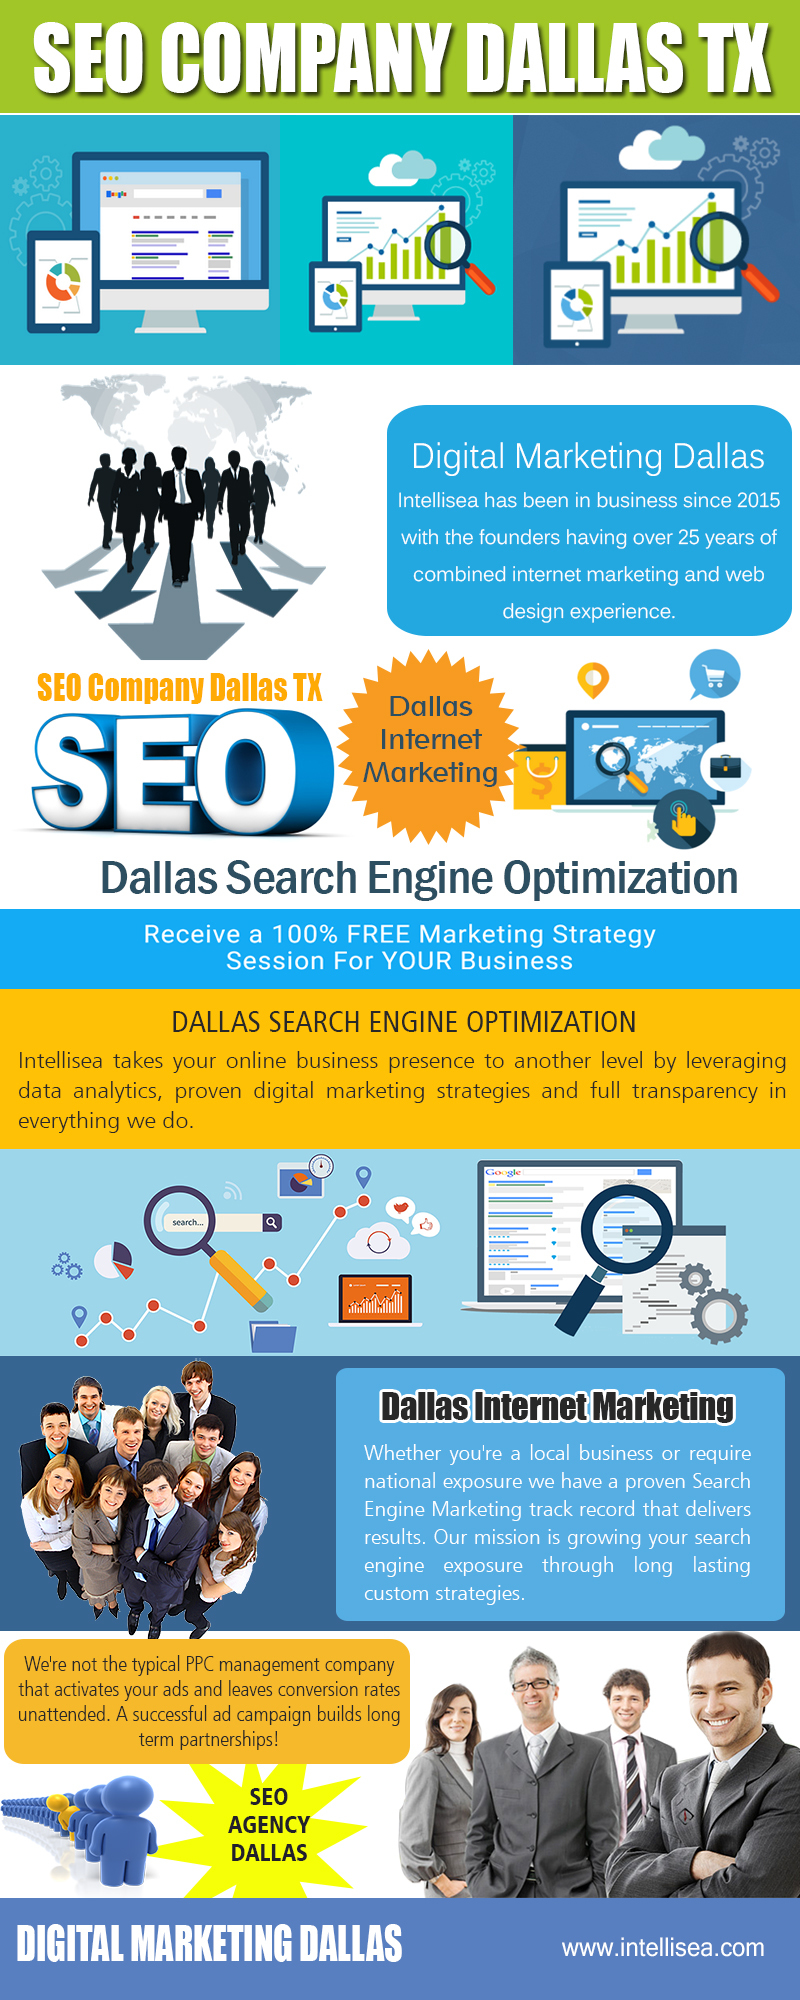 SEO Agency Dallas | intellisea.com